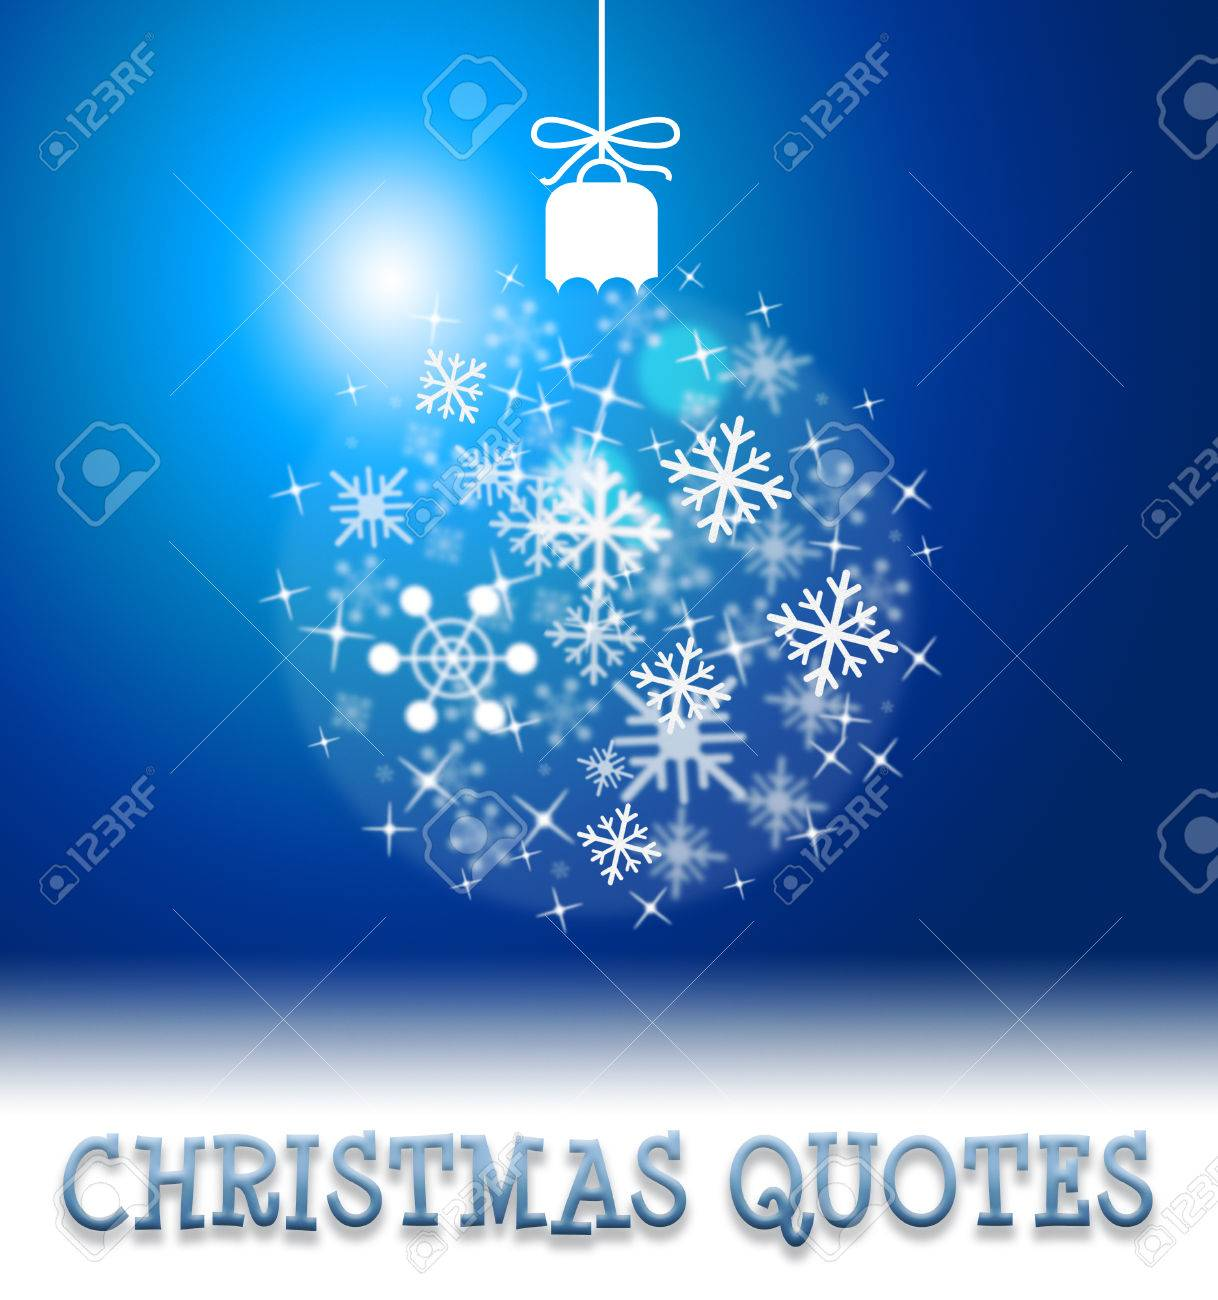 Quotes Xmas Christmas Quotes Ball Decoration Shows Happy Xmas Winter Sayings